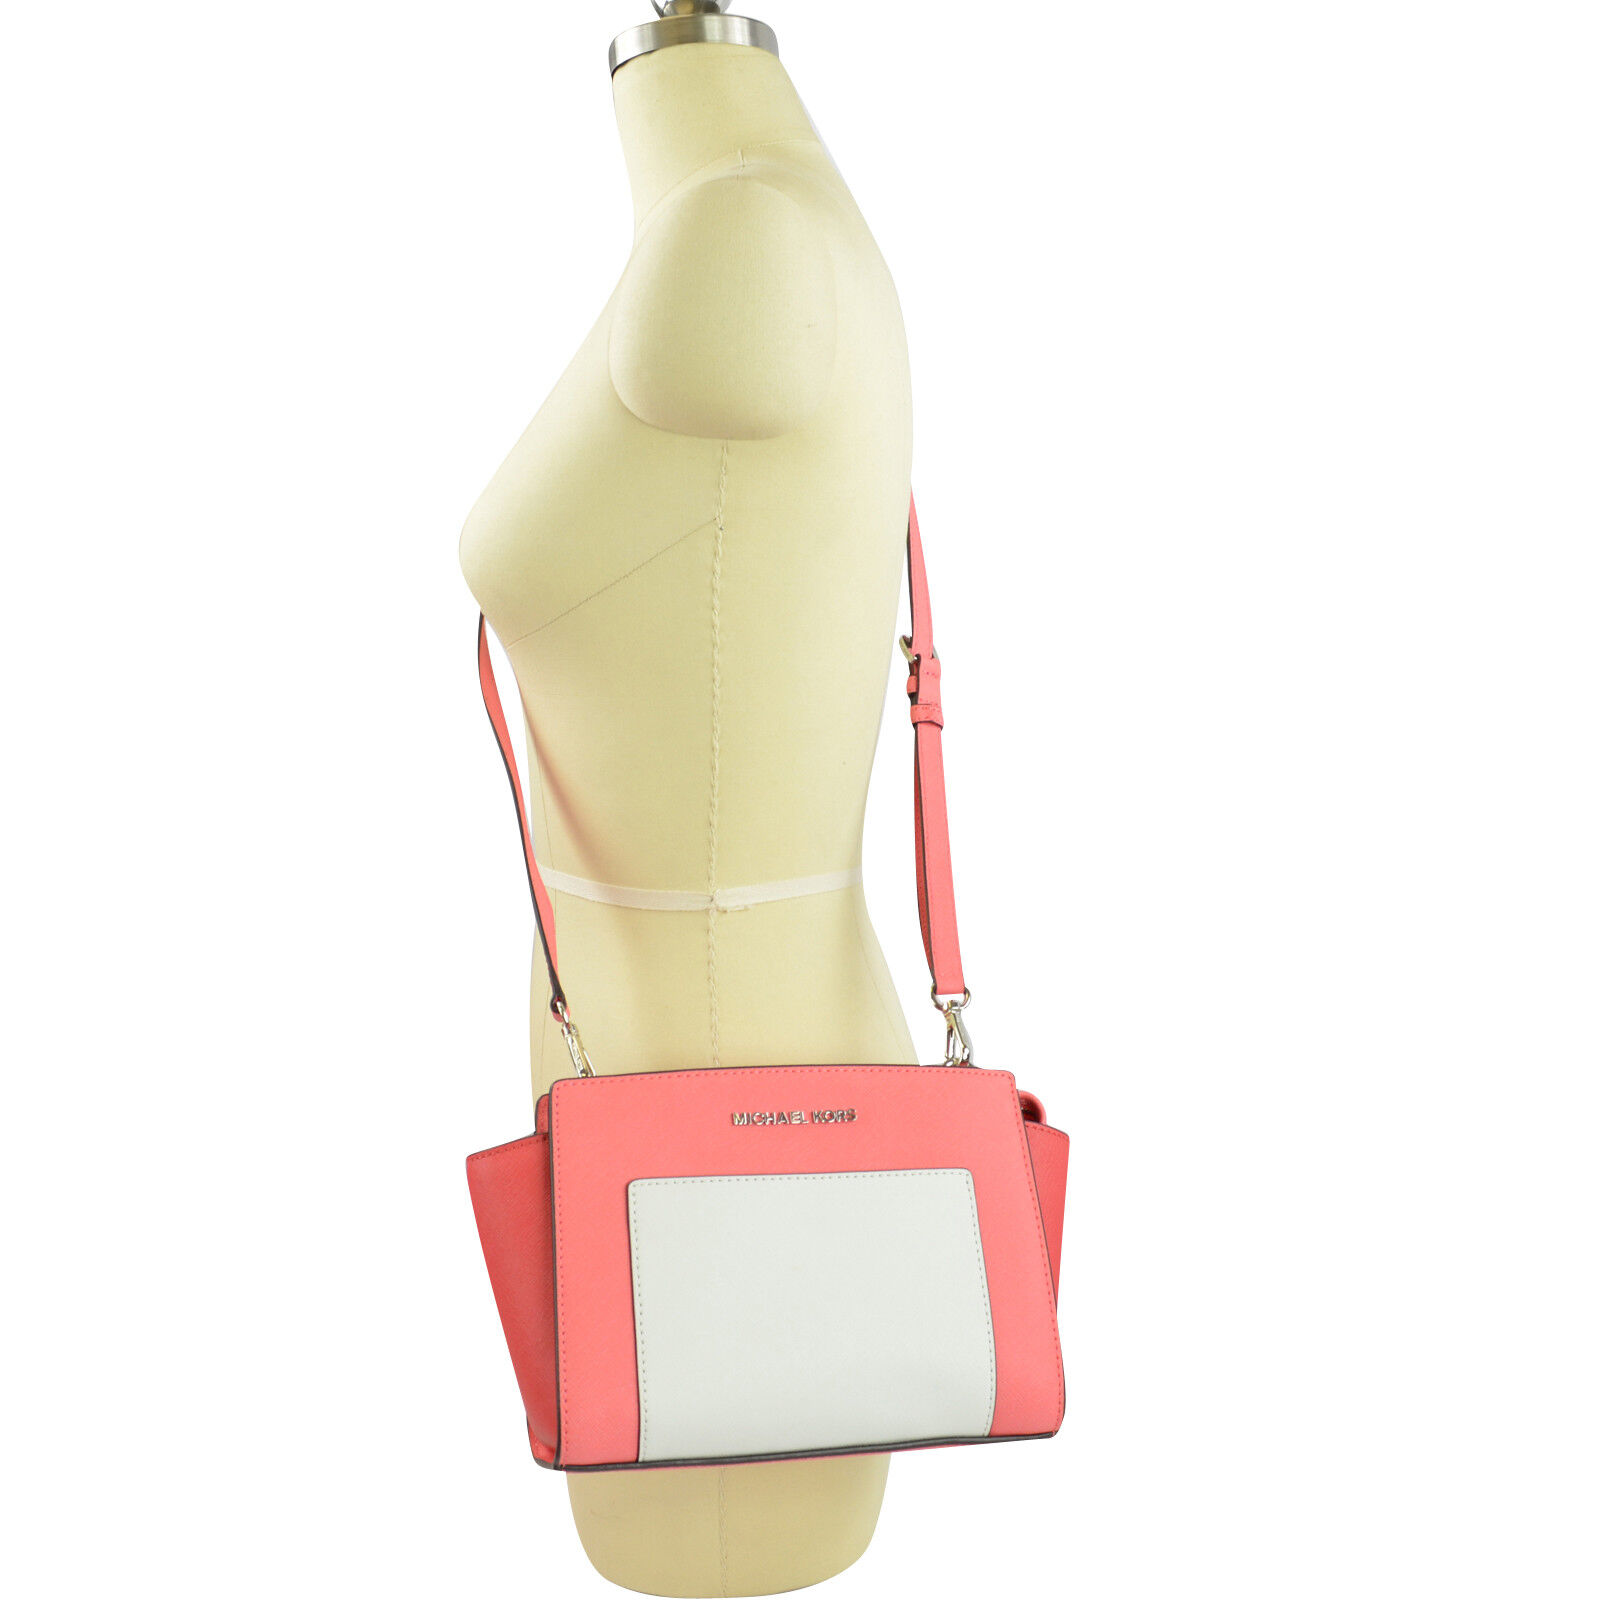 68e08d4058ba Details about Michael Kors Selma Pocket Saffiano Leather Messenger Coral  Watermelon White